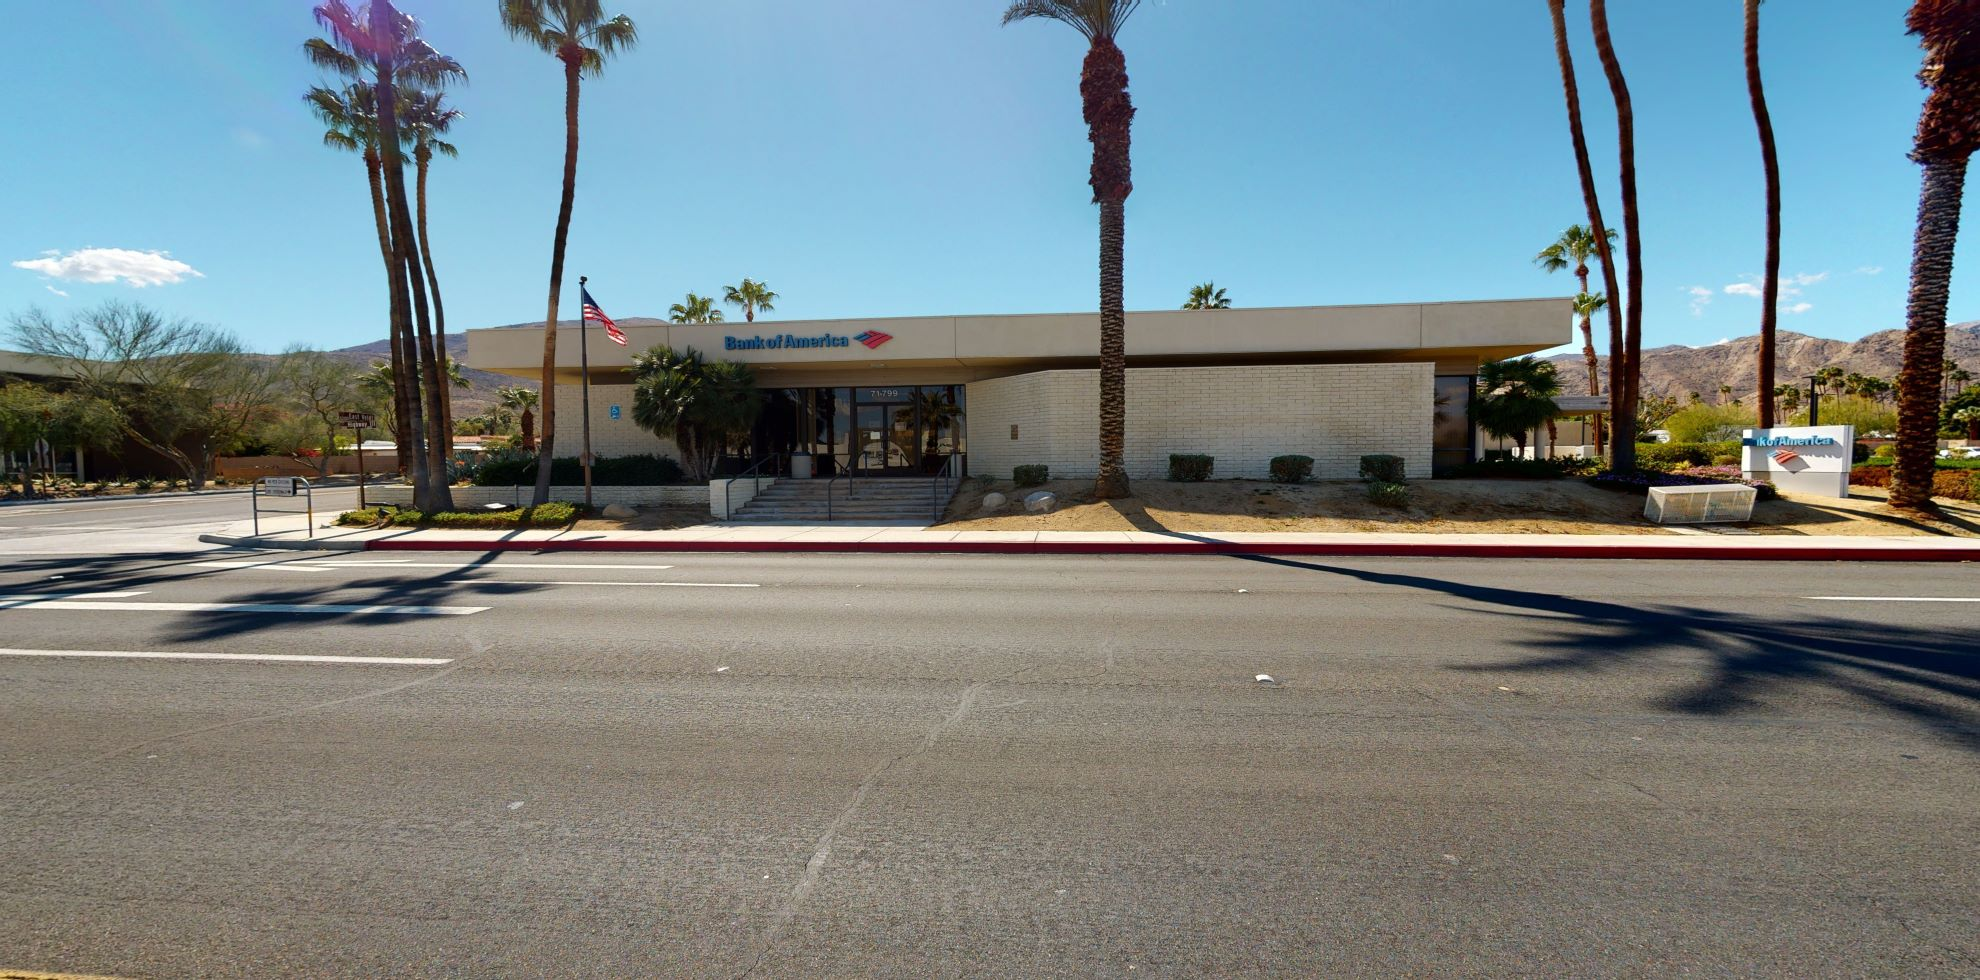 Bank of America financial center with drive-thru ATM   71799 US Highway 111, Rancho Mirage, CA 92270